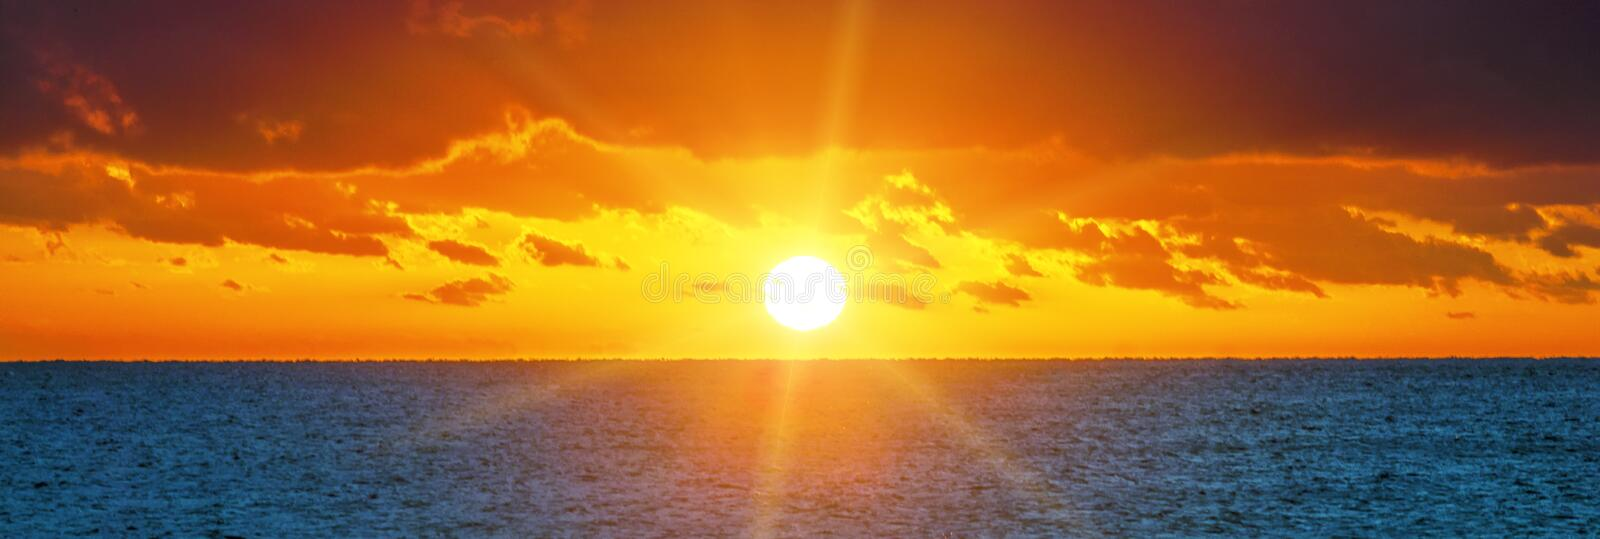 Beautiful sunset over the ocean stock image